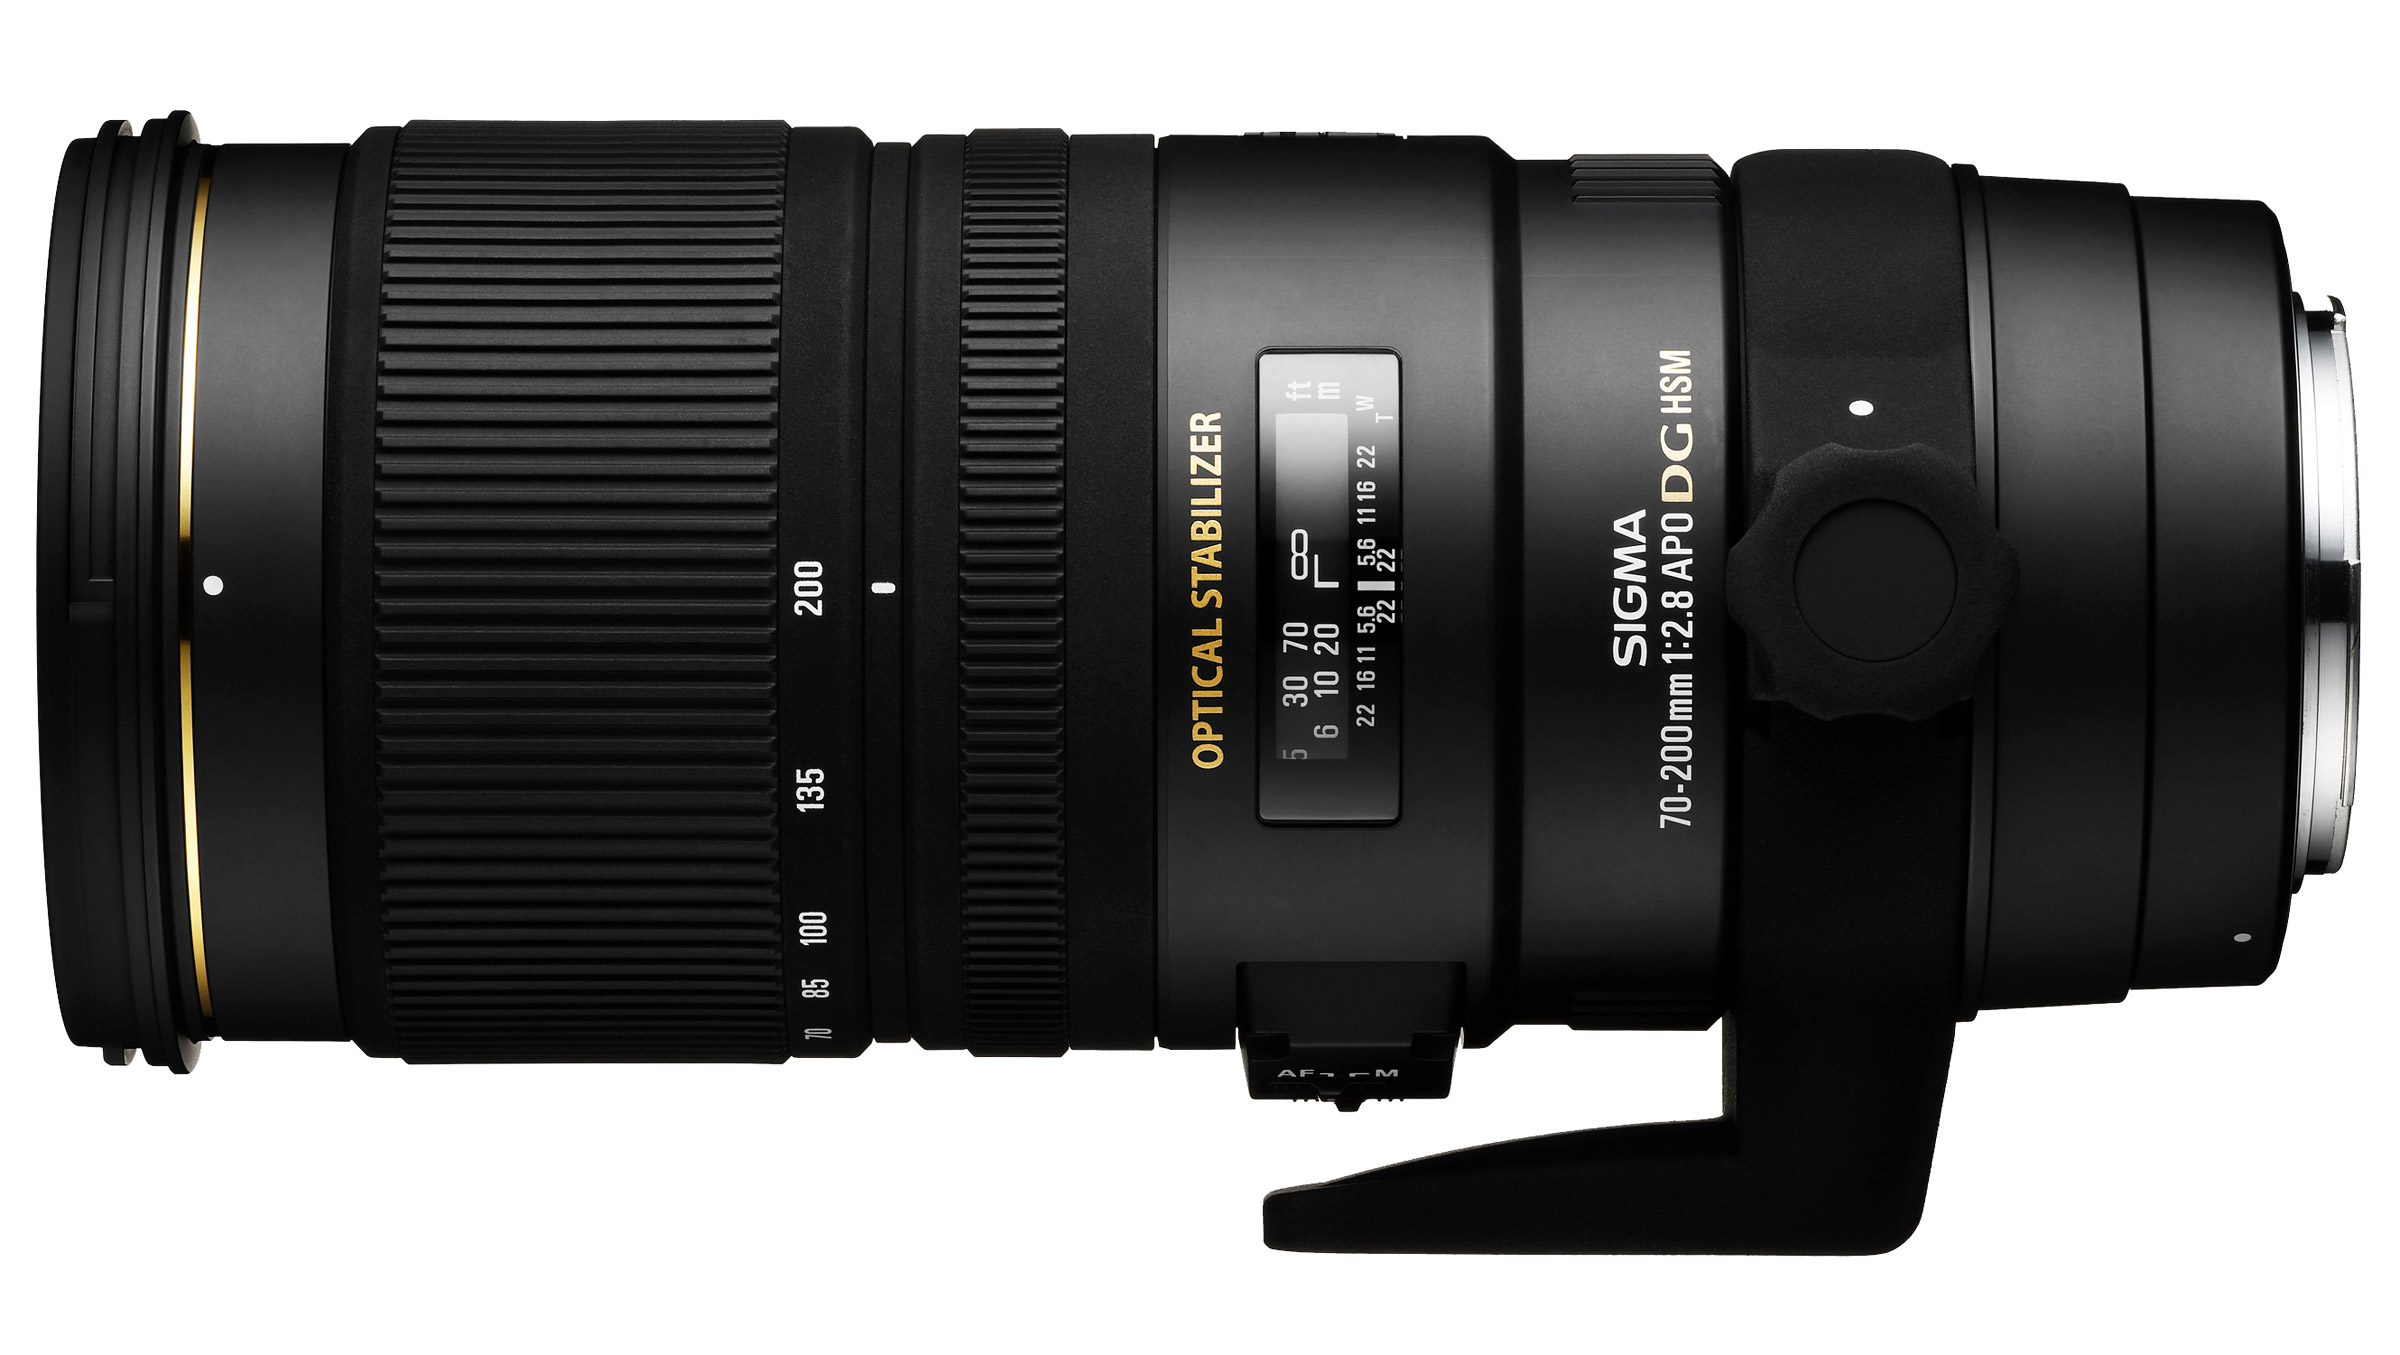 Sigma 70-200mm f/2.8 EX DG OS HSM : Specifications and ...